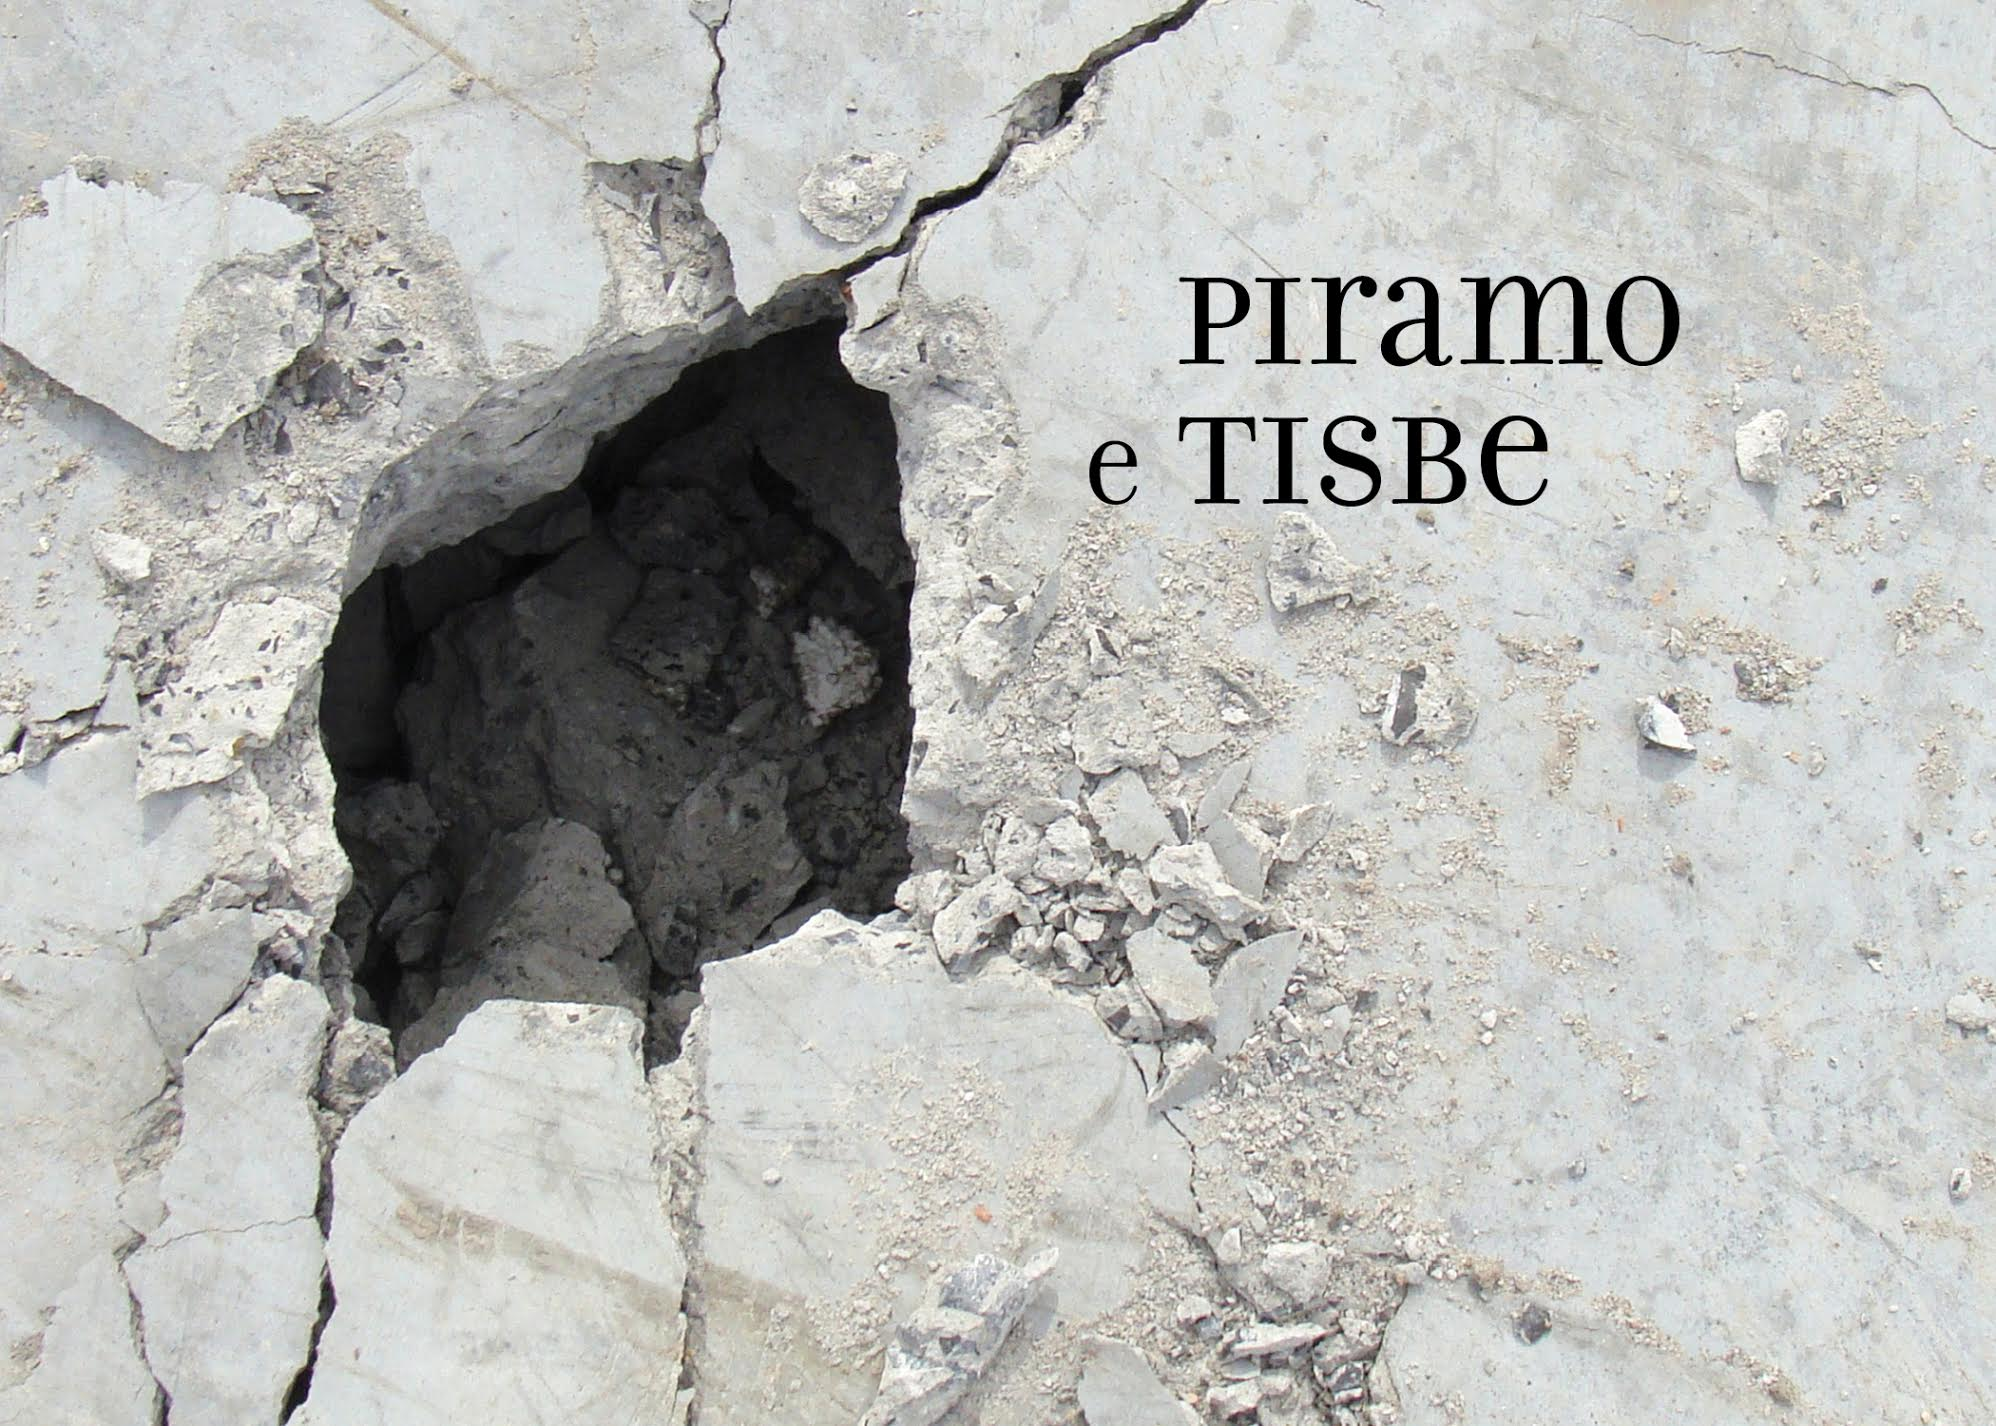 Piramo e Tisbe - Opera by J.A. HasseMarch 22-25, 2018Baruch Performing Arts CenterView the program!